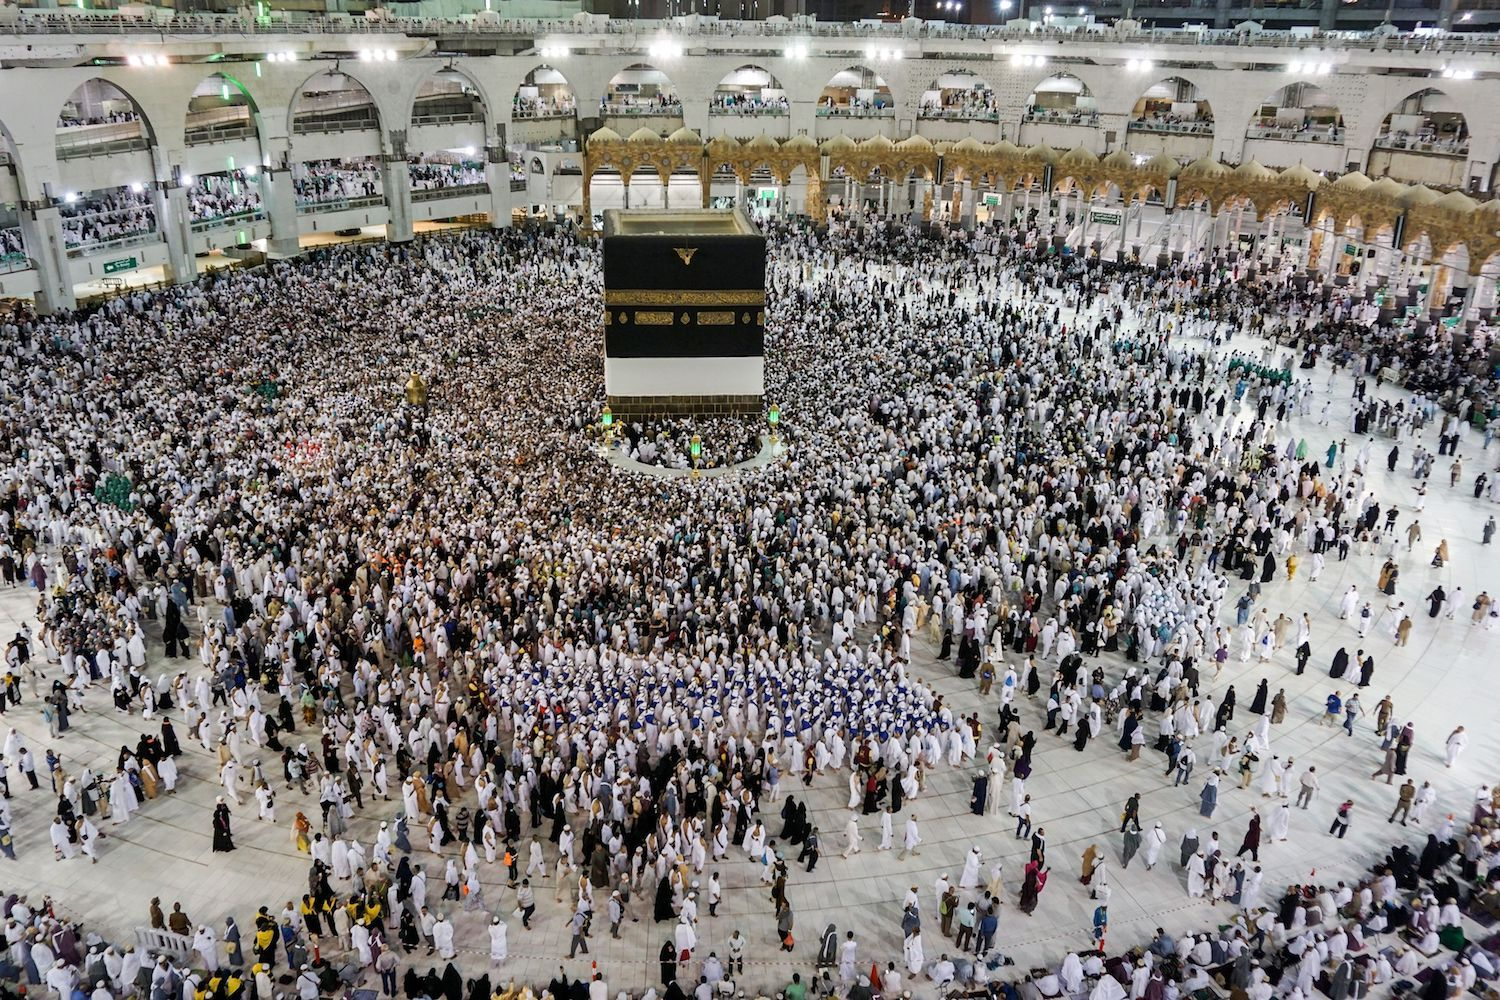 Mohammed bin Salman Is Making Muslims Boycott Mecca